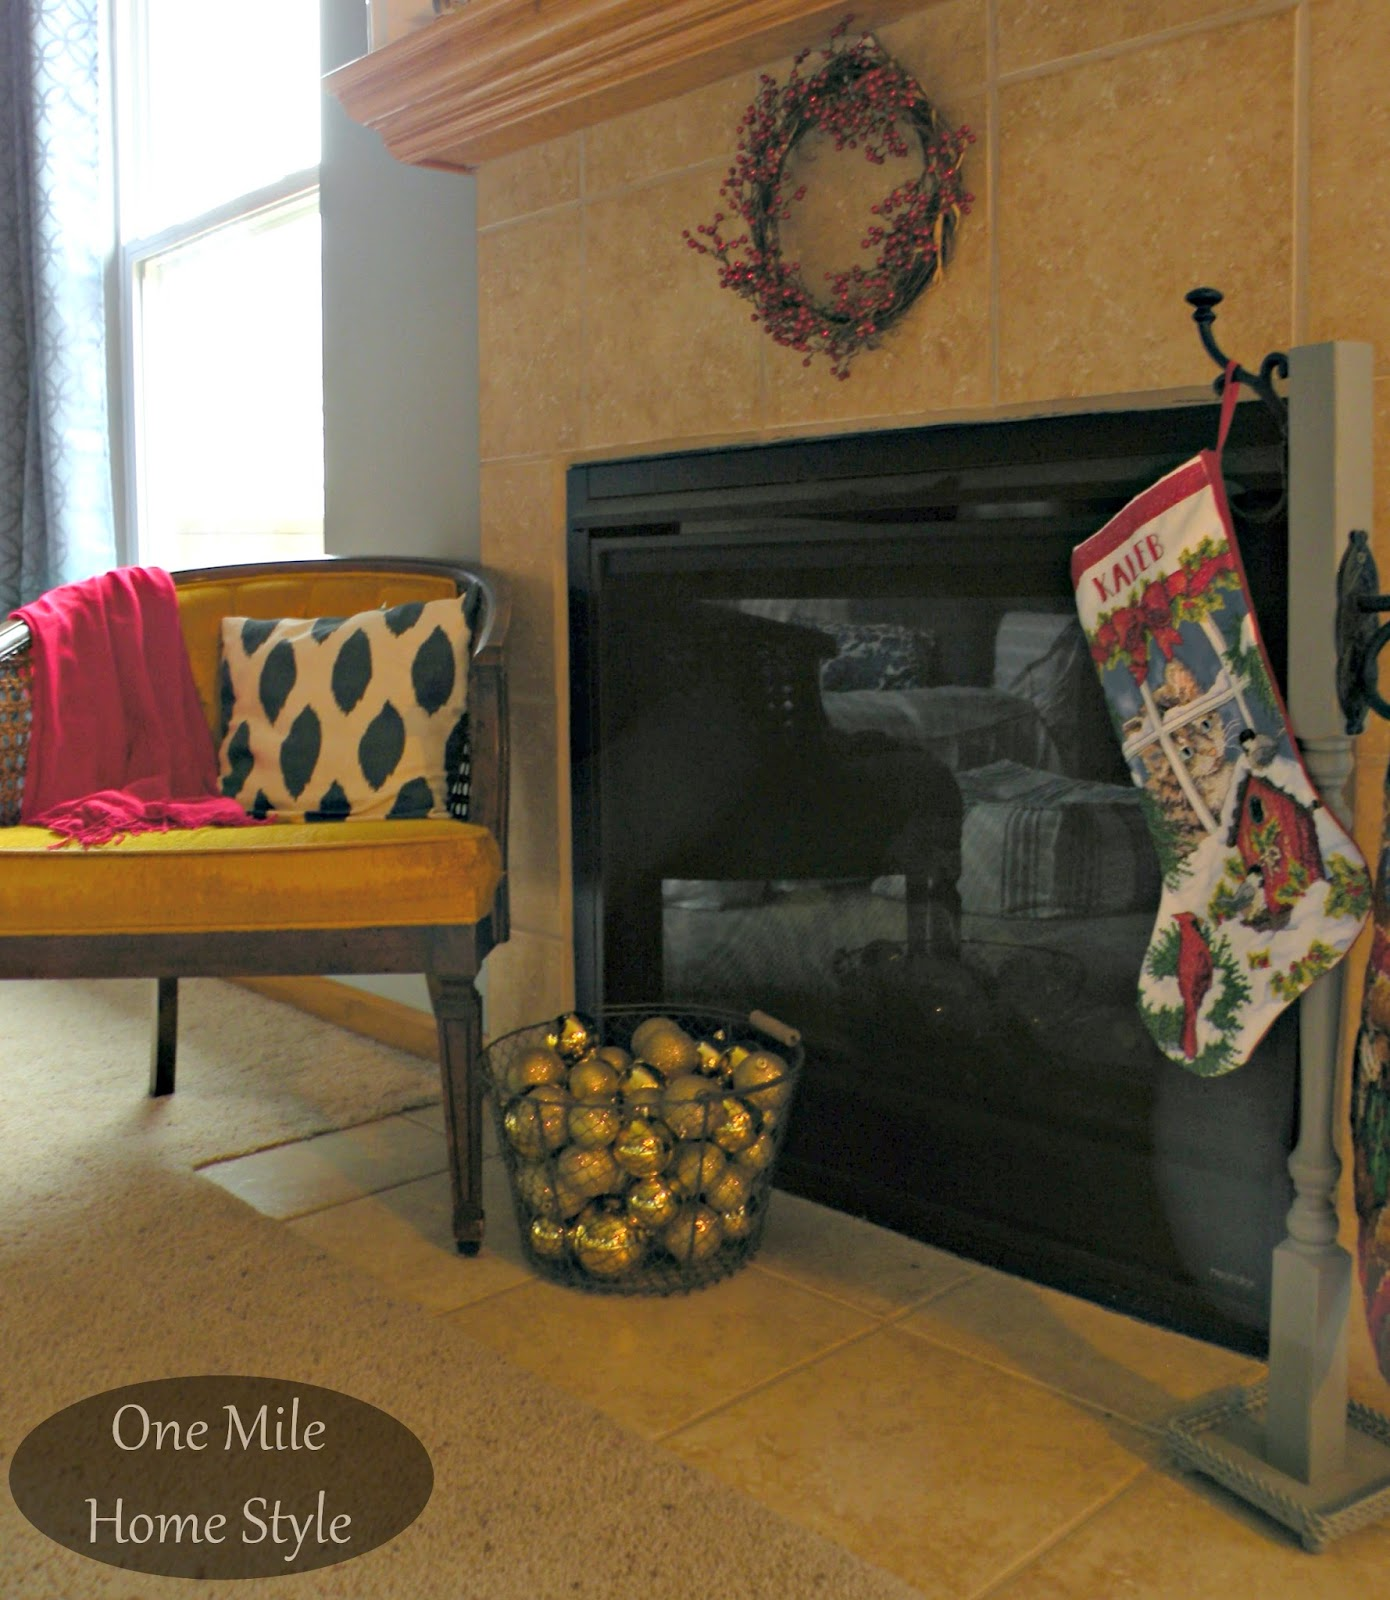 Sitting Area and Stockings by the fireplace